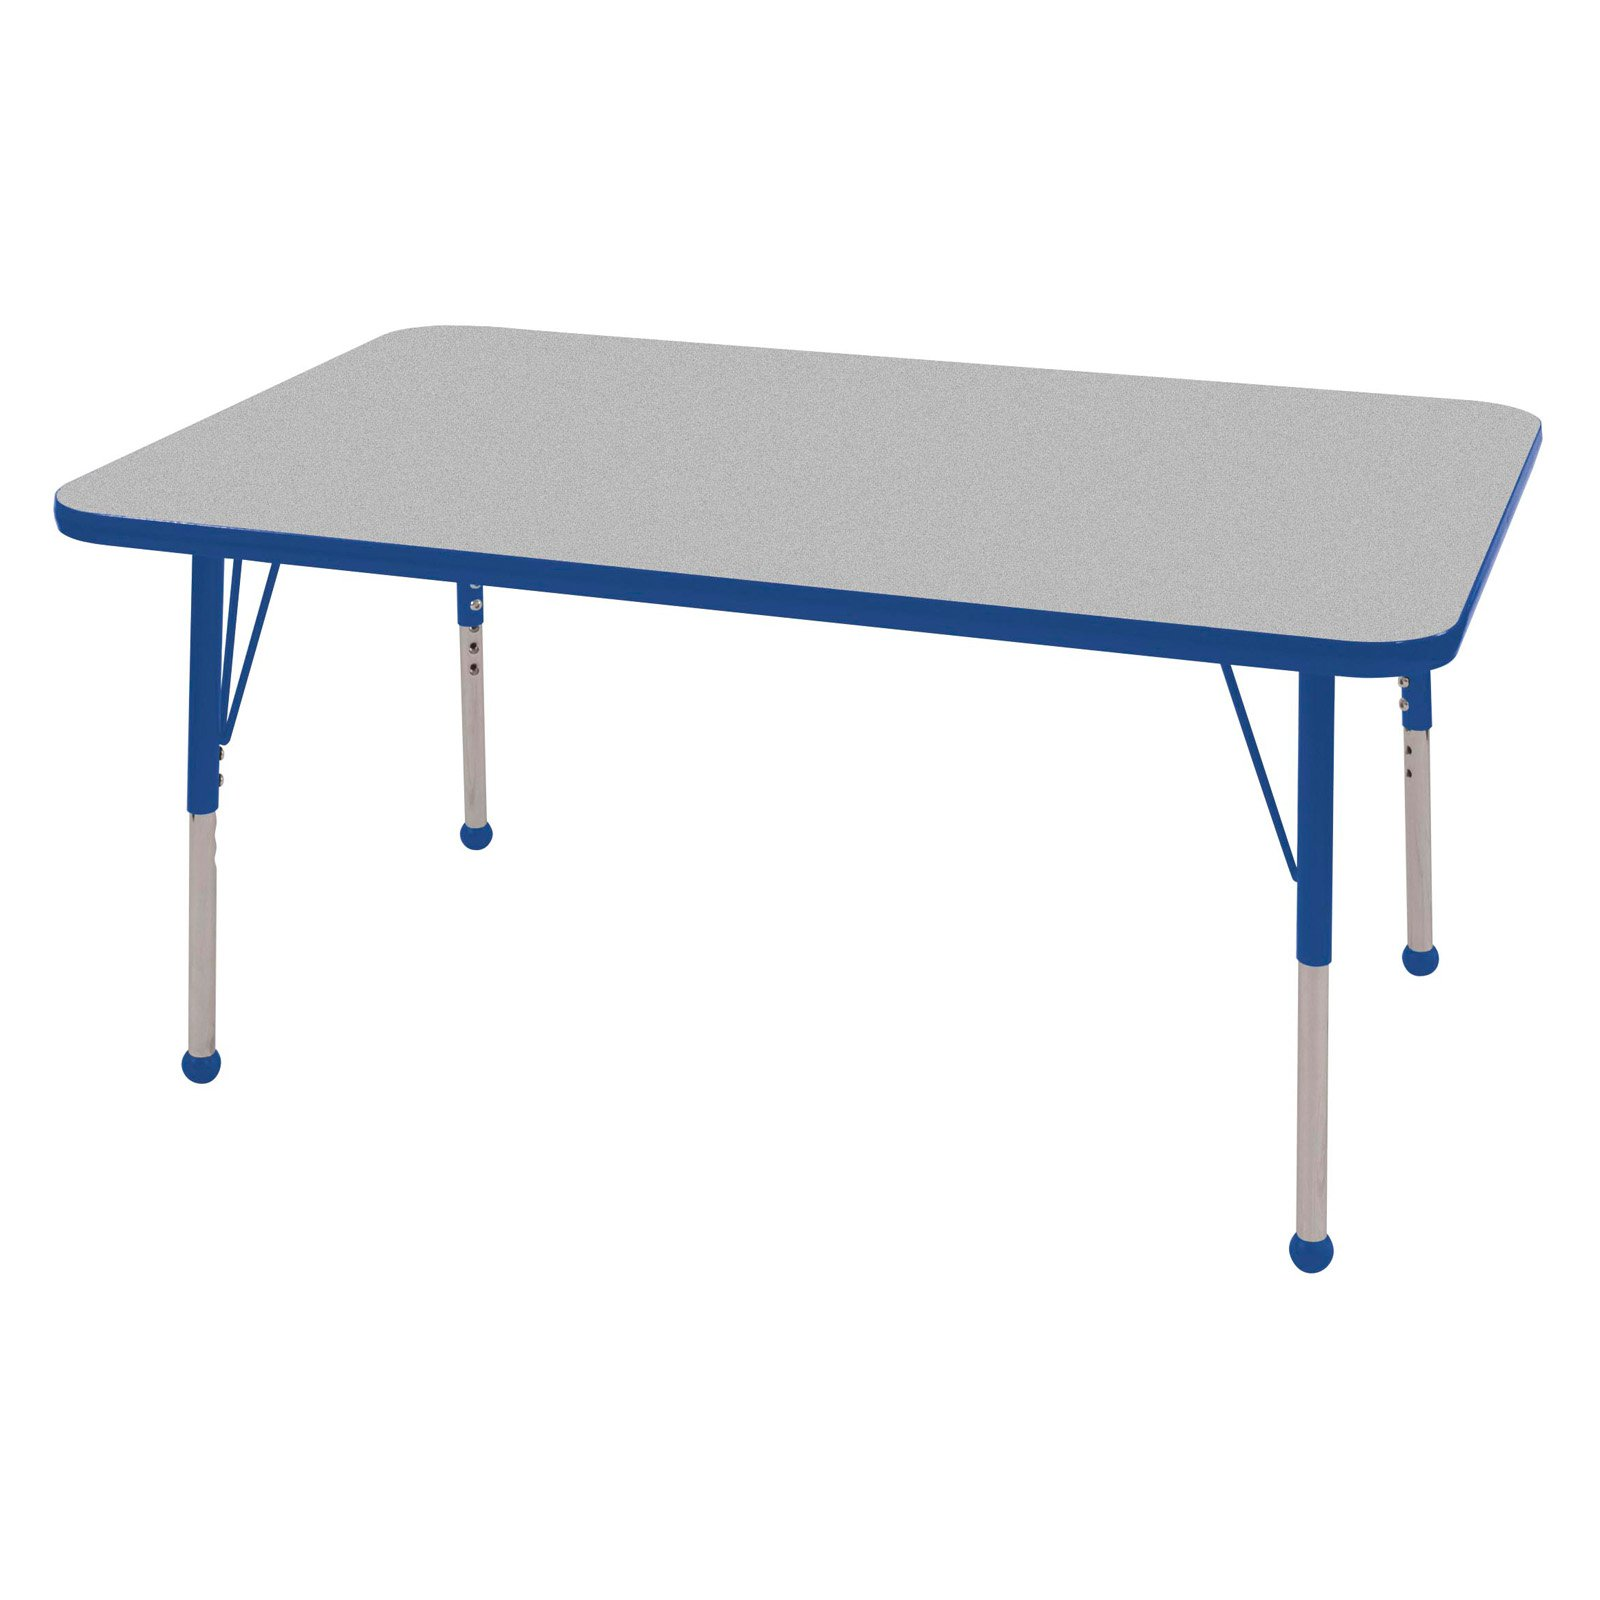 ECR4KIDS Gray Rectangle Adjustable Activity Table - 30L x 48W in.